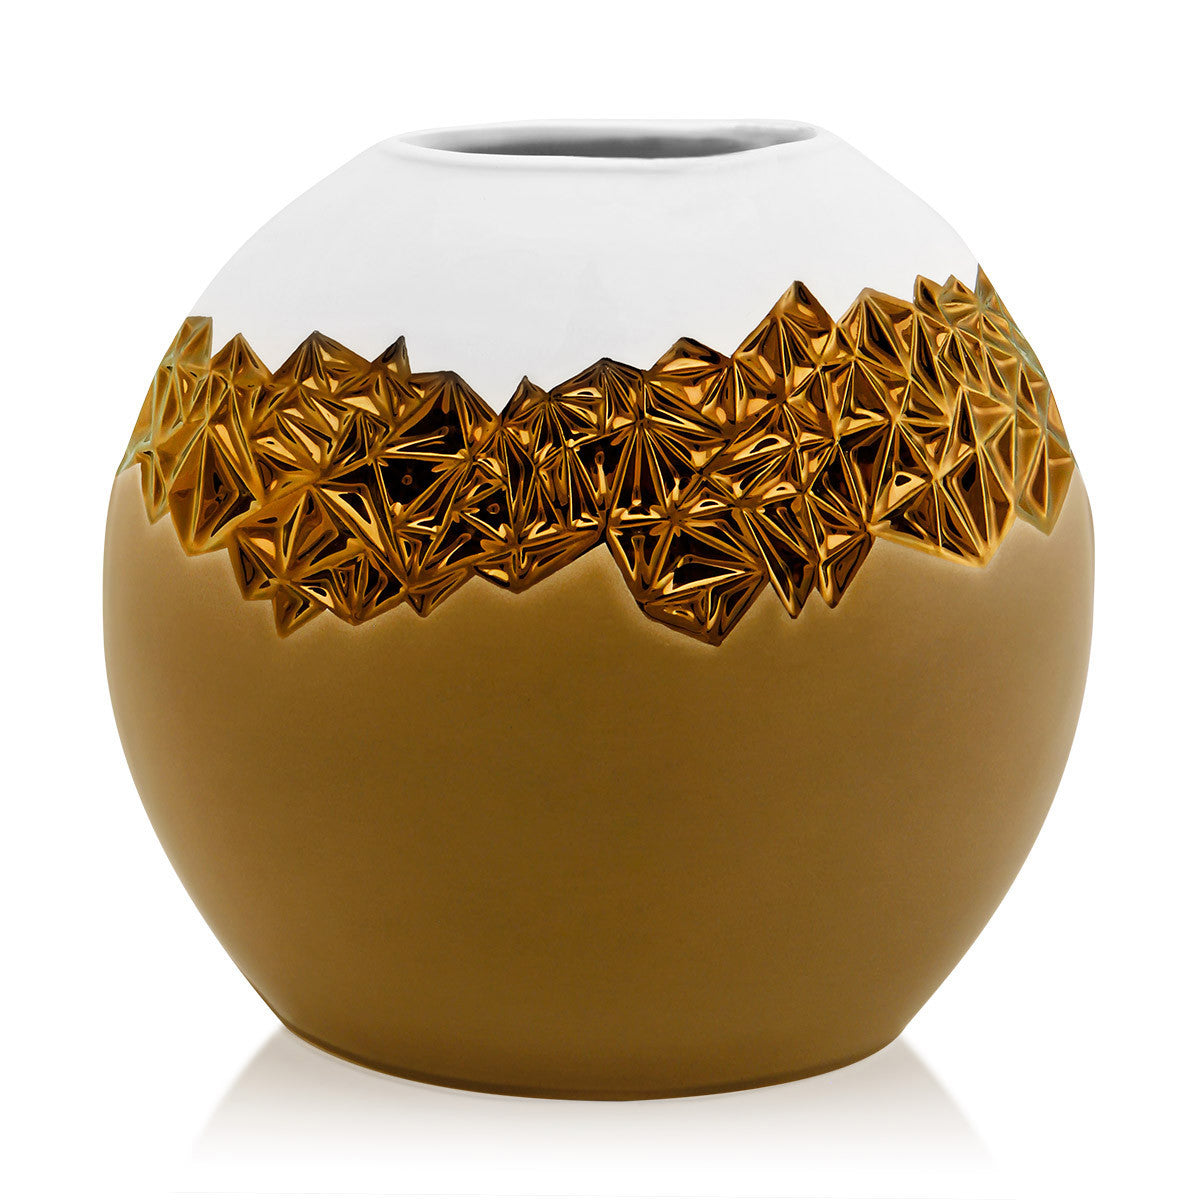 Ceramic Vase brown and gold